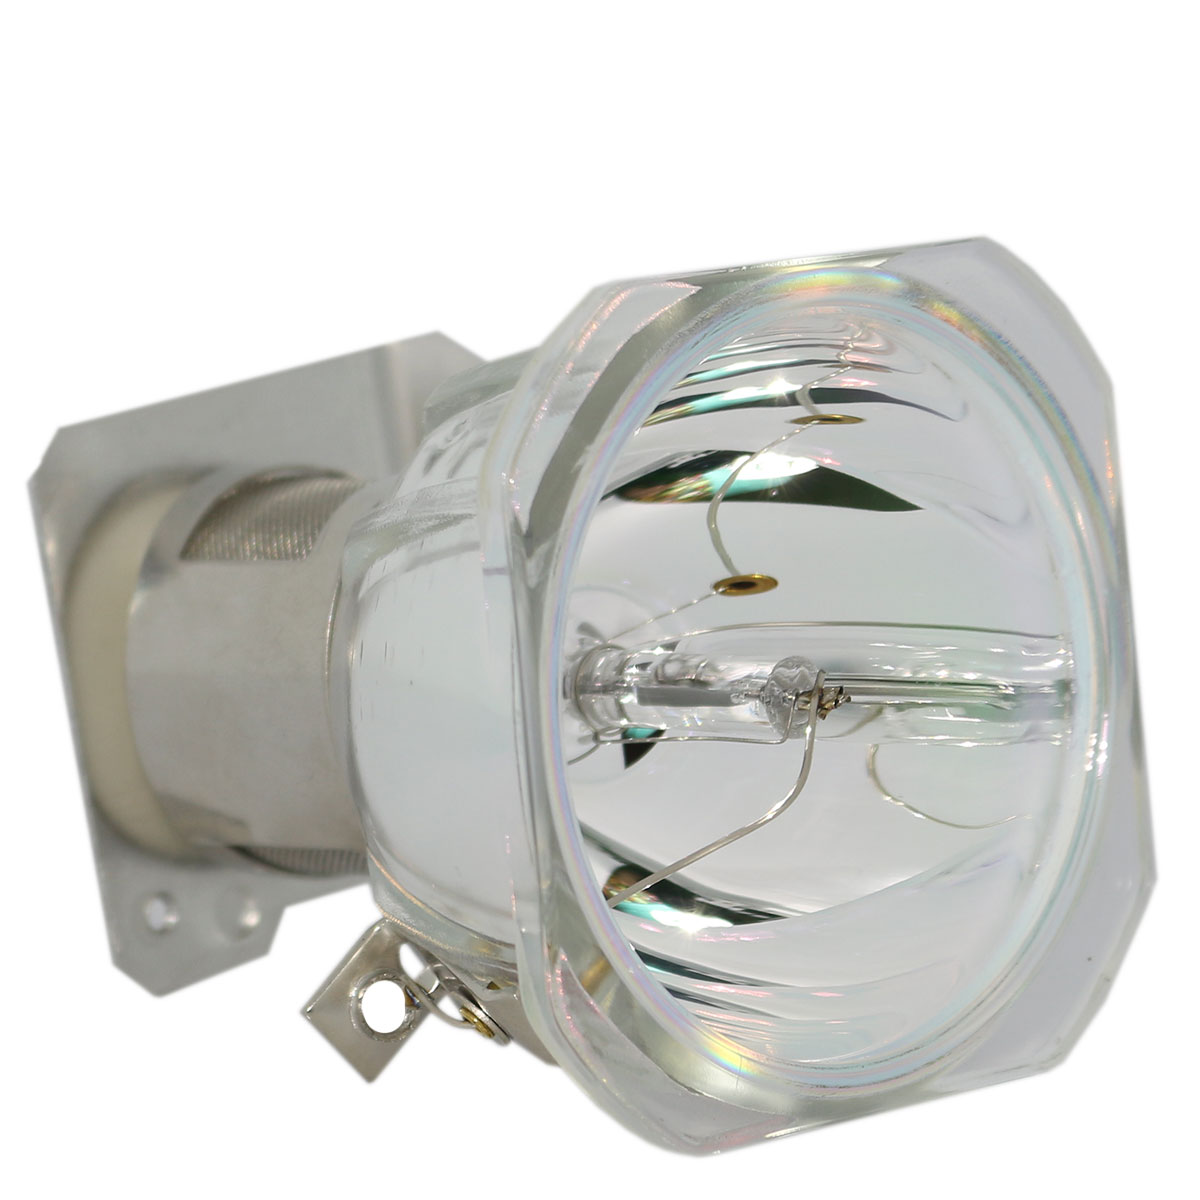 Phoenix Original Bulb Replacement For Nec Dt400 Projector Lamp Projection Bulbs Ebay